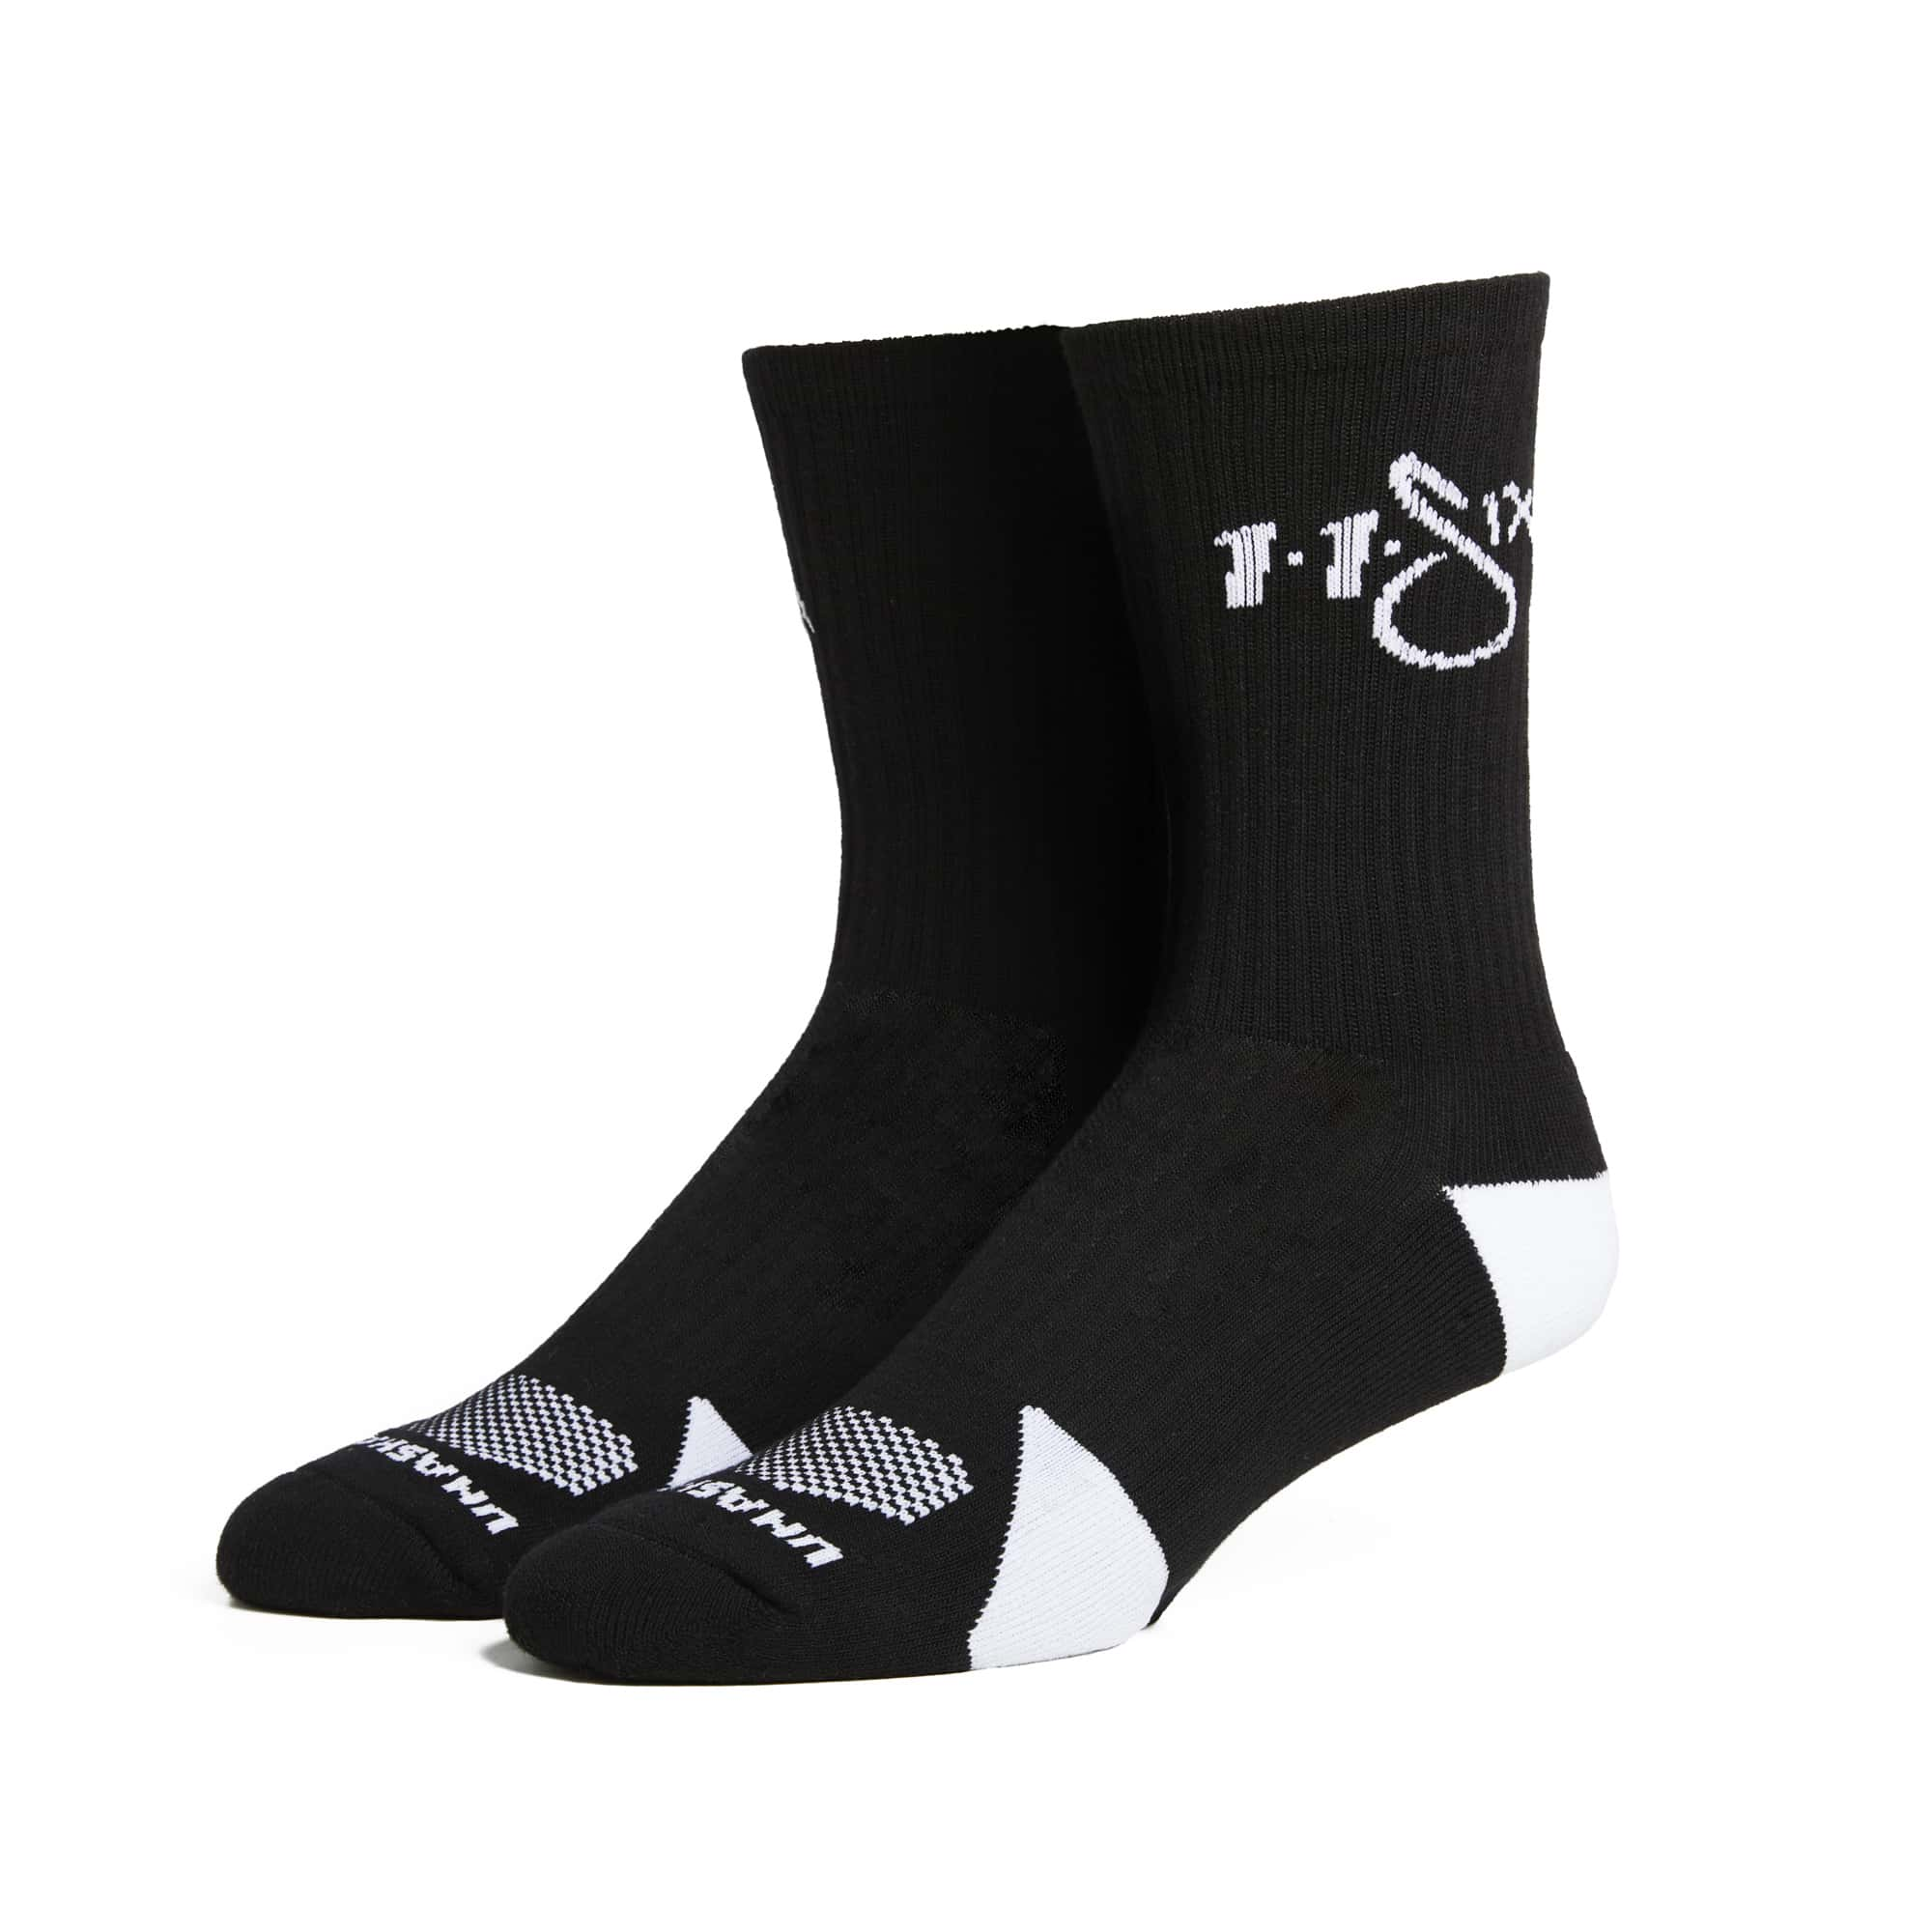 116 Athletics Socks - Black & White